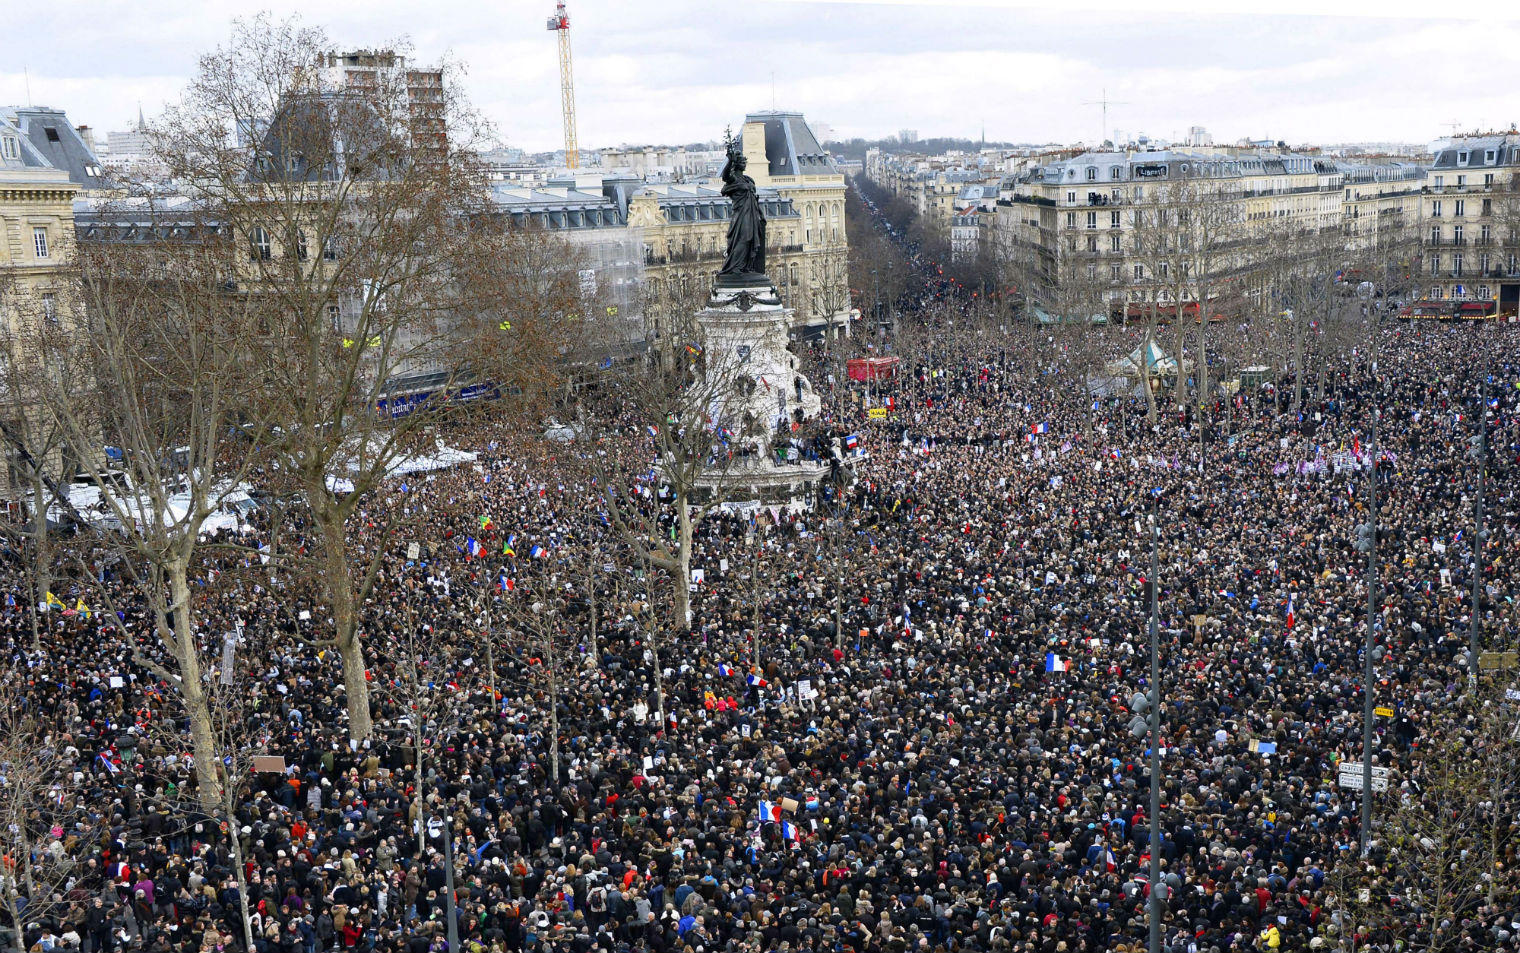 Solidarity march in Paris in response to terrorist attacks.